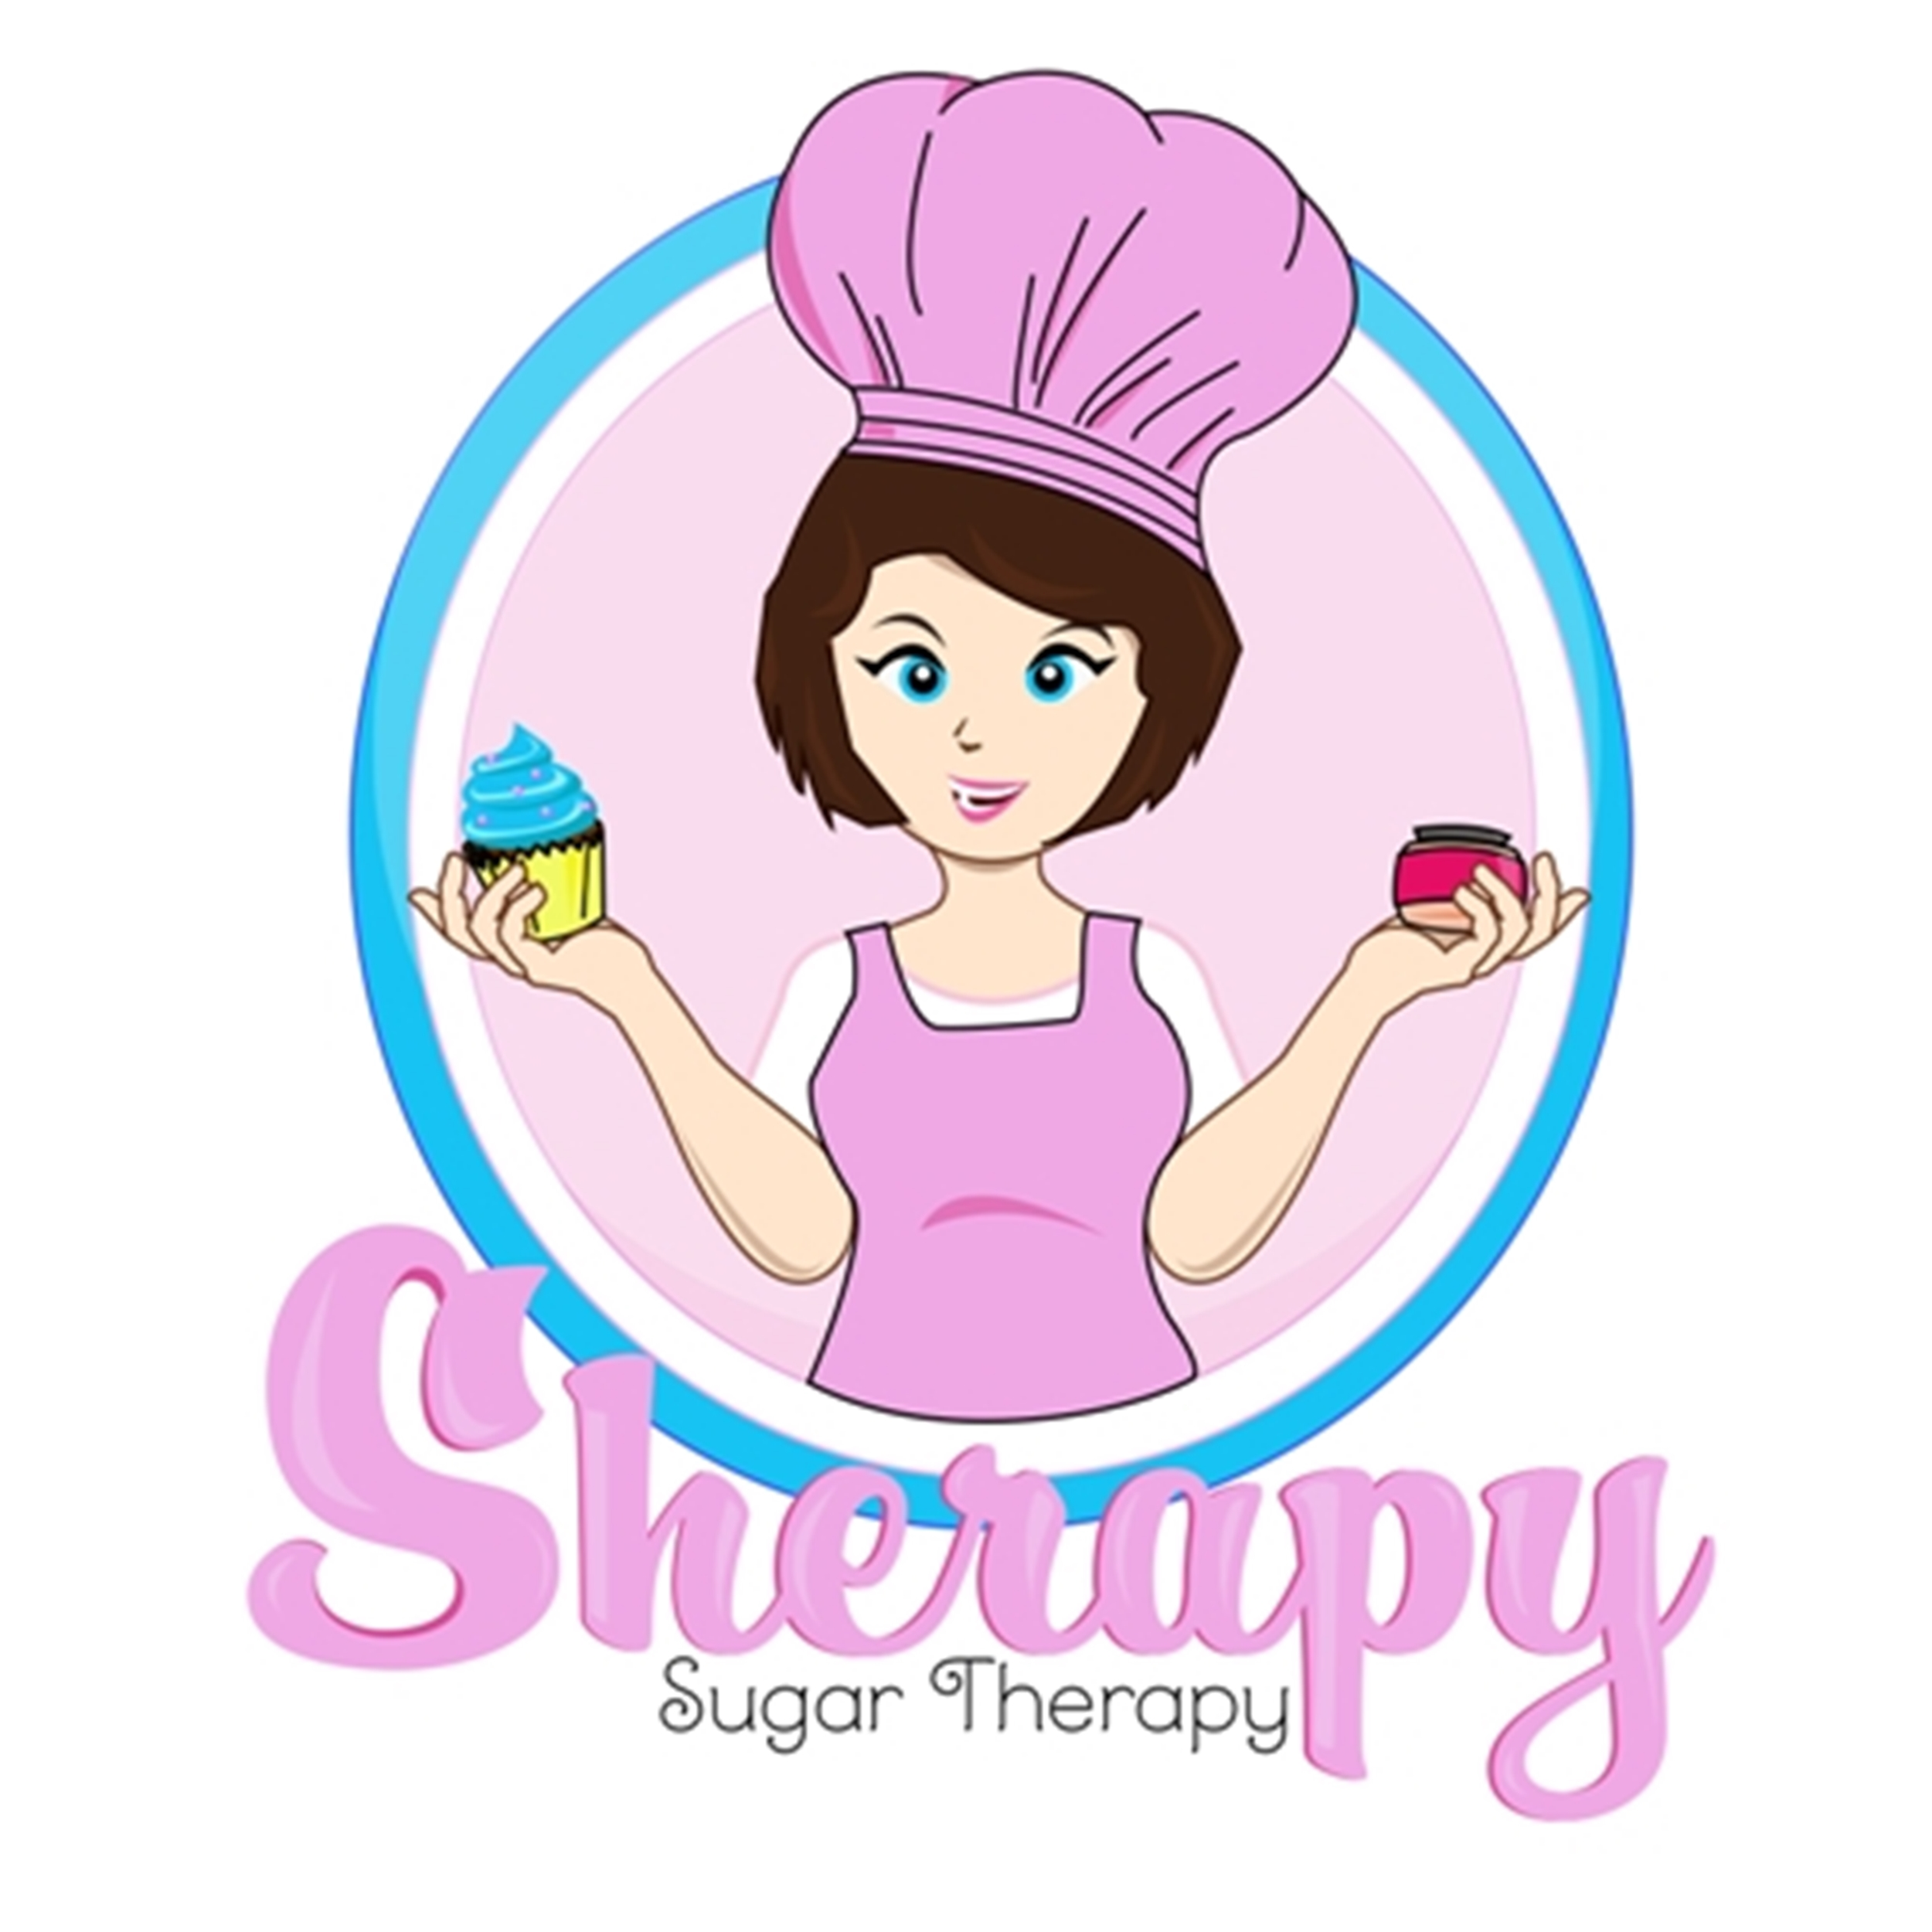 Sherapy Sugar Therapy.jpg